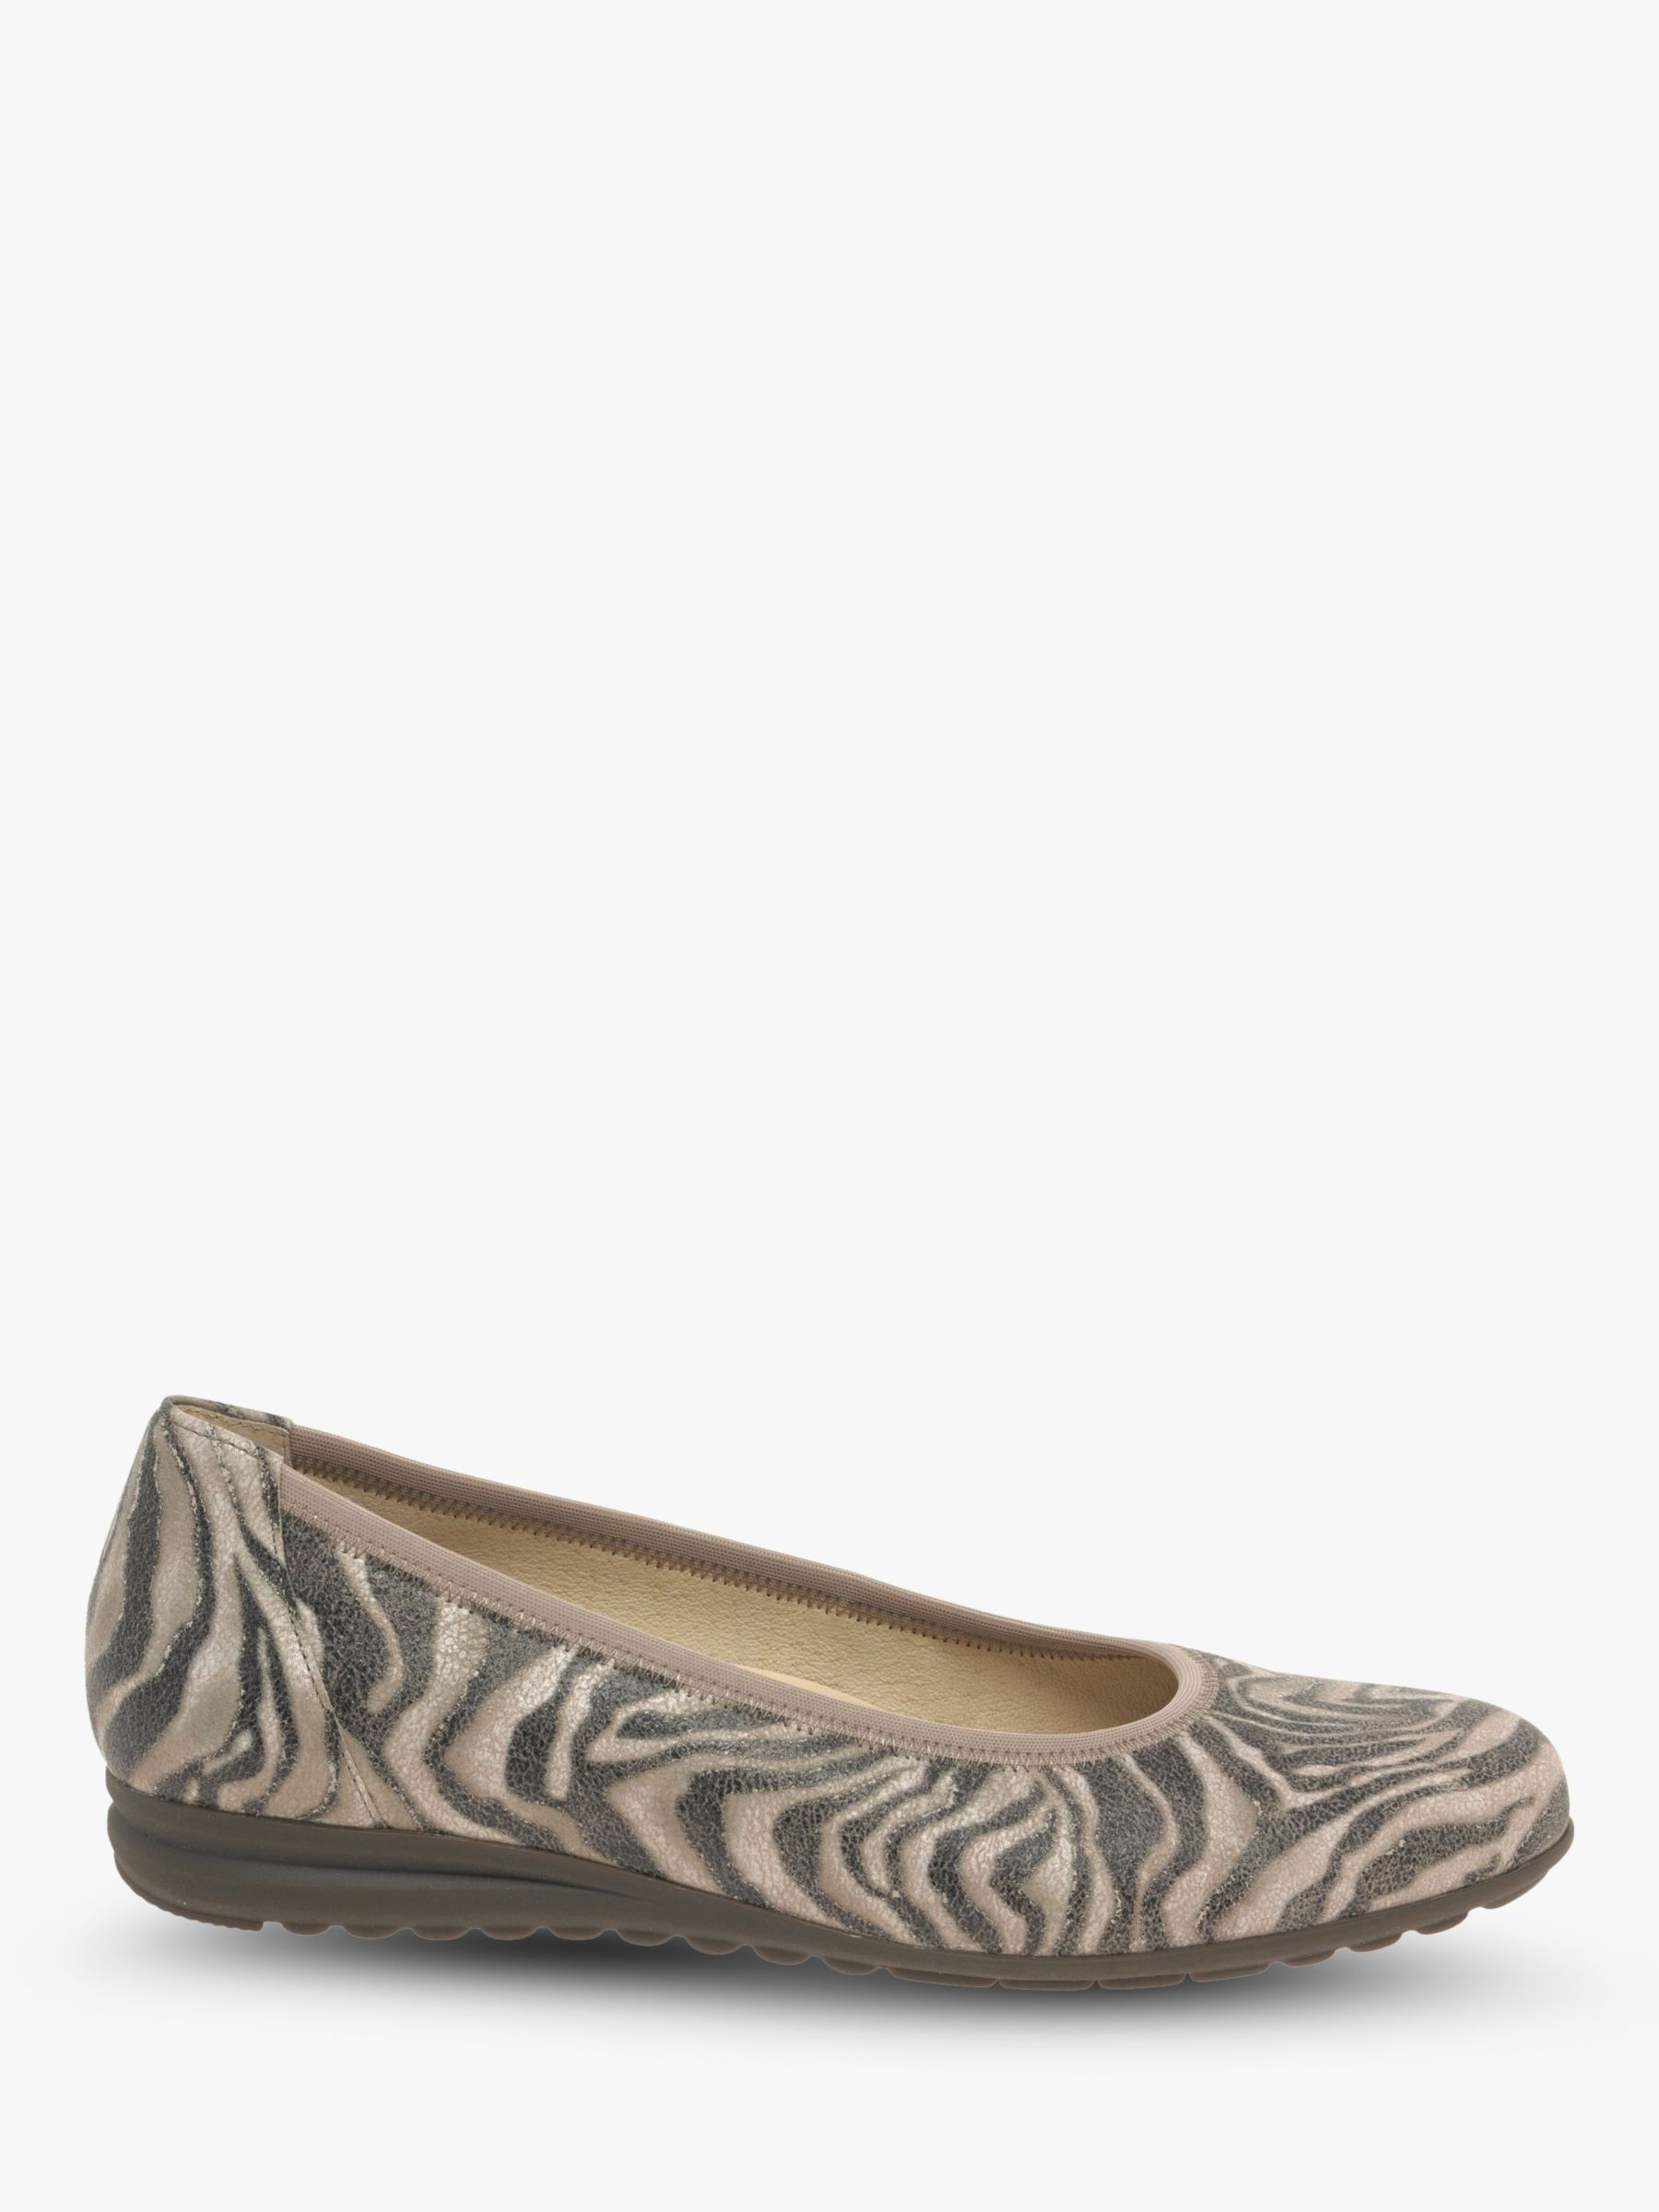 Gabor Gabor Splash Wide Fit Leather Pumps, Multi